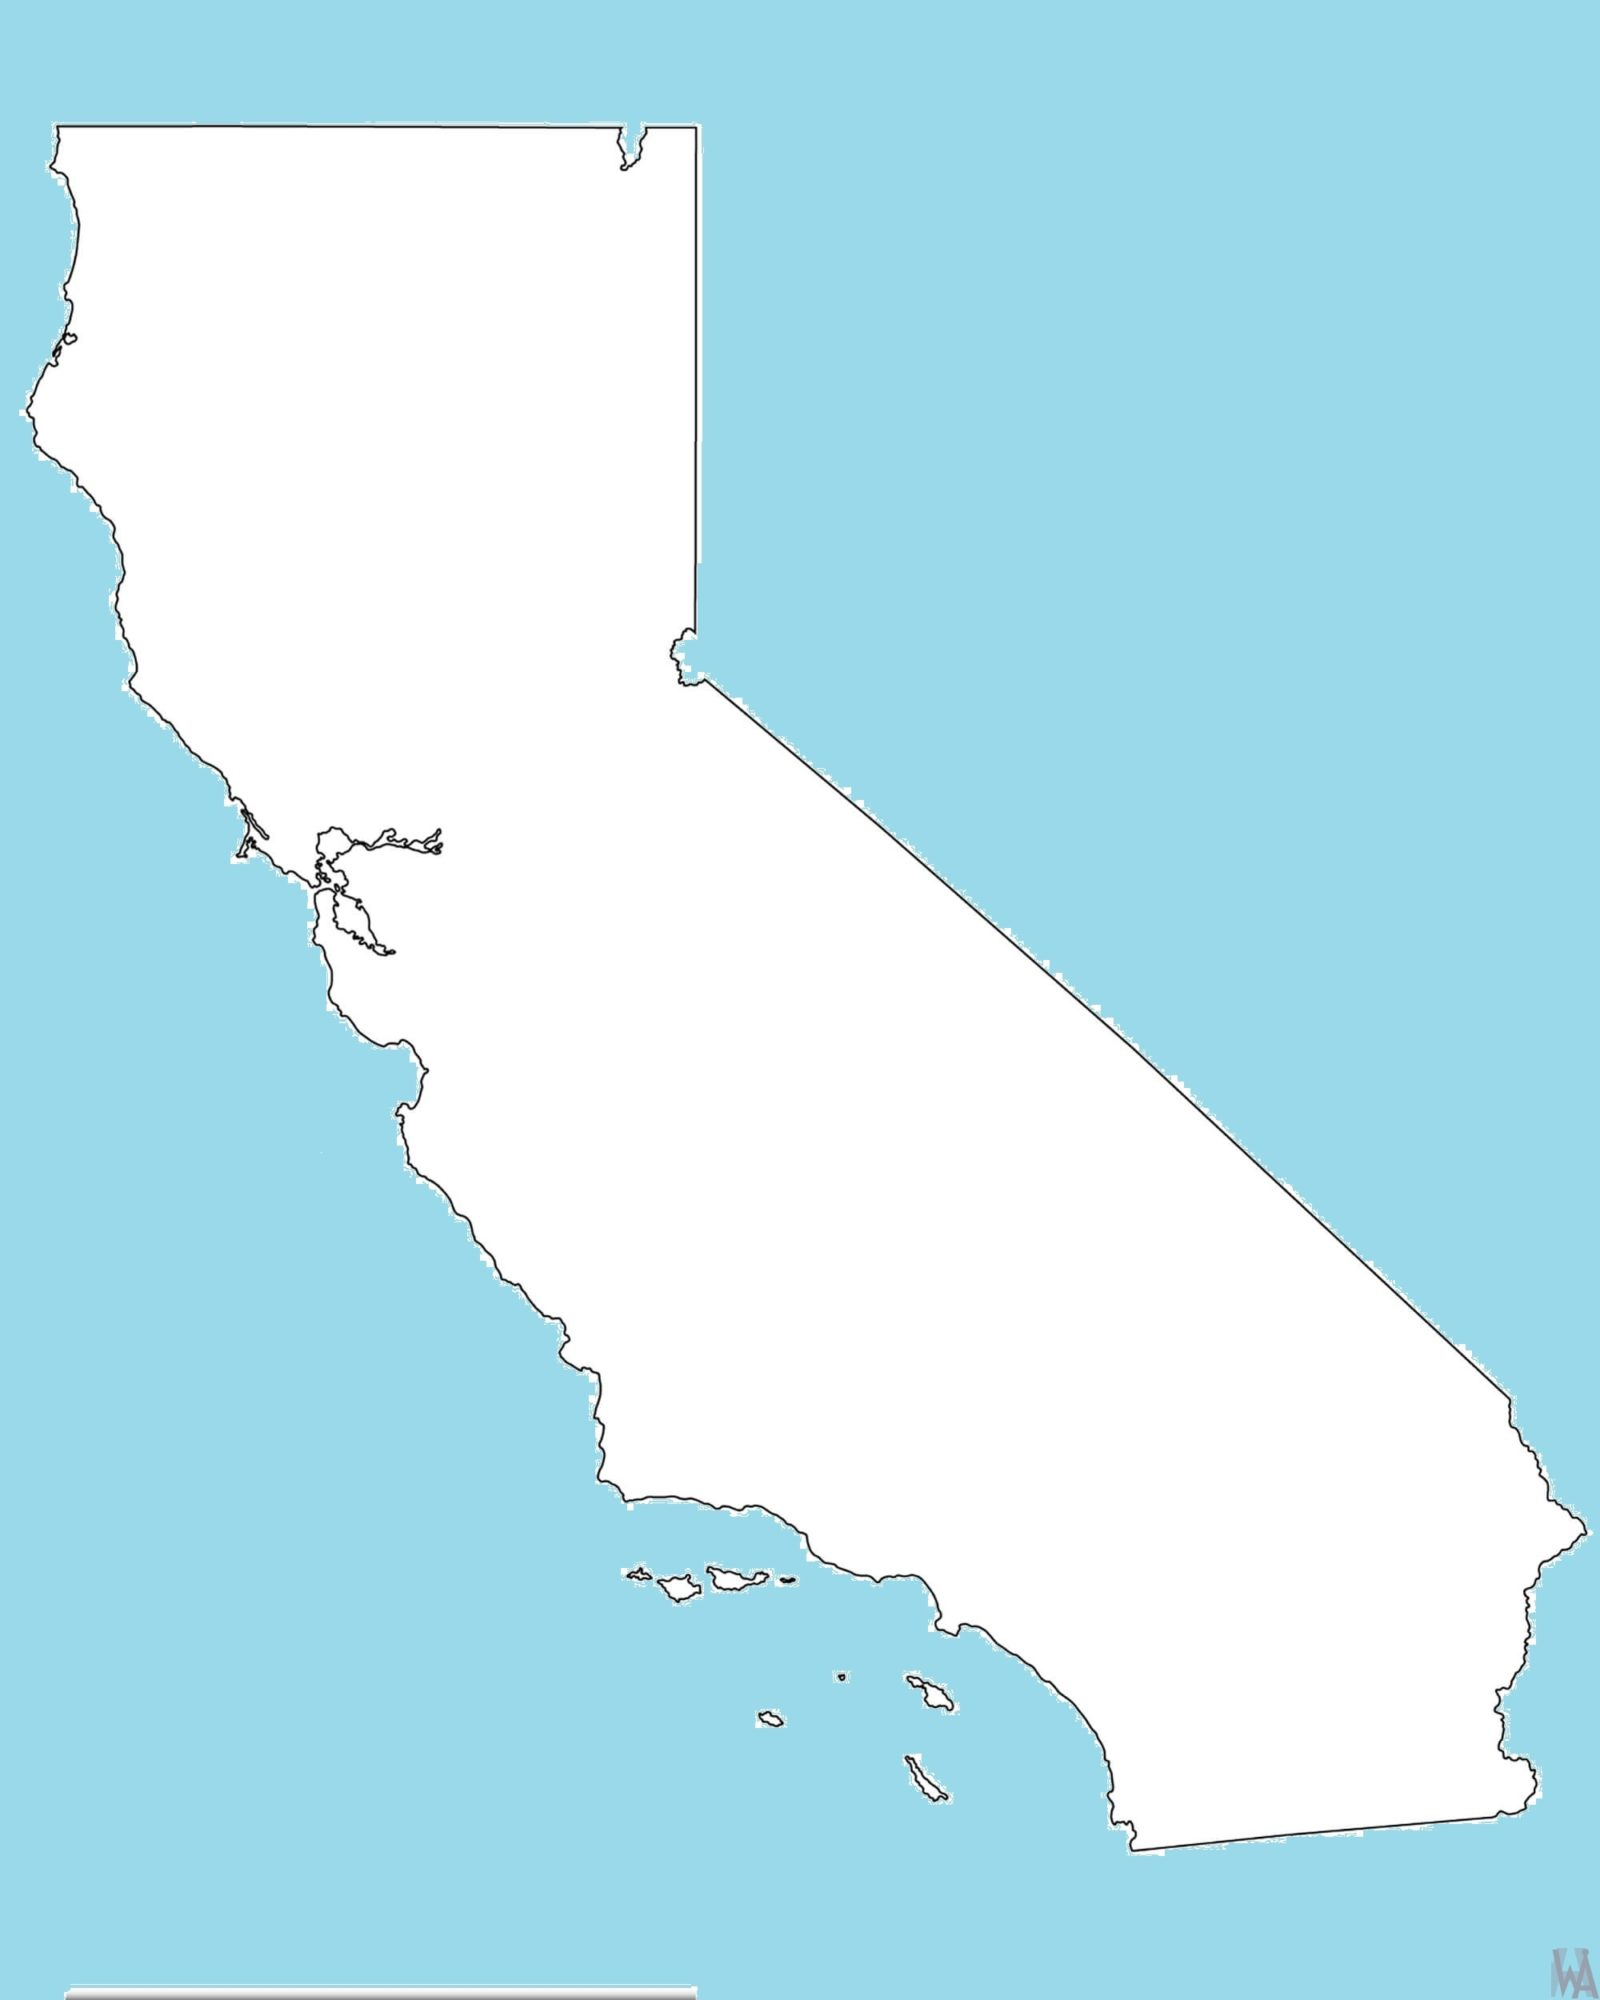 California Blank Outline Map  – 2   |  Blank Outline Map of California